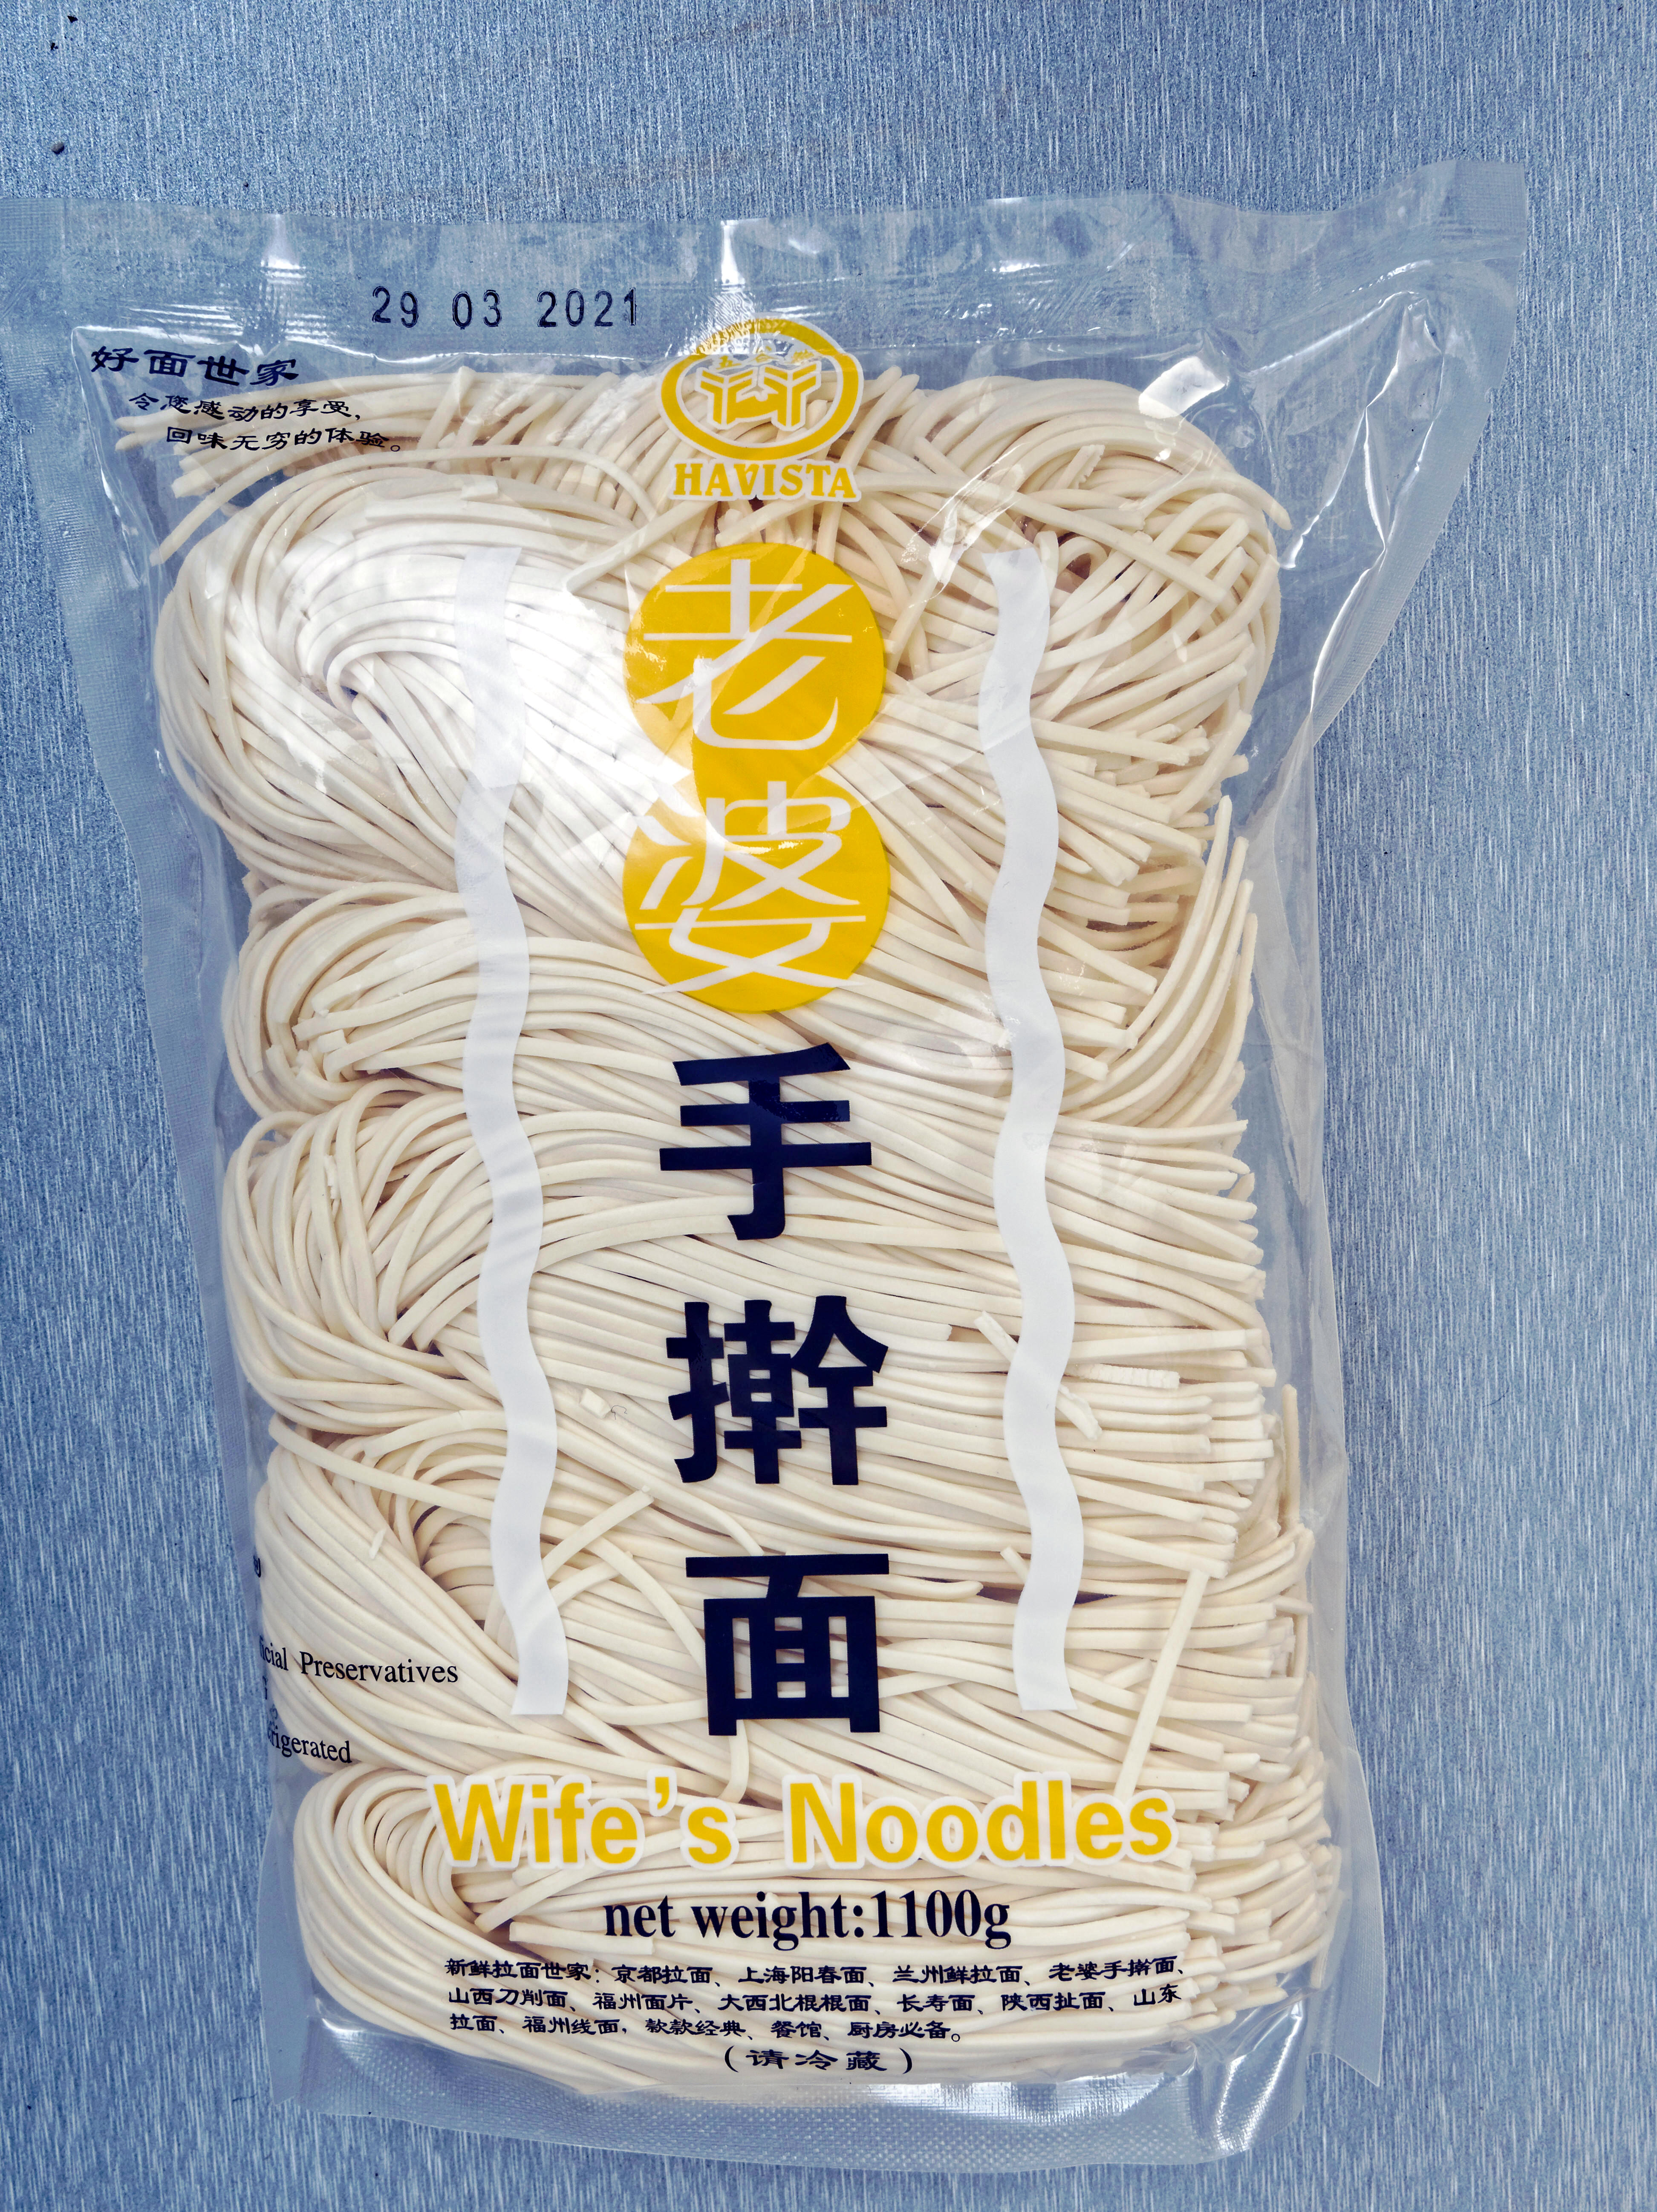 This should be Wifes-noodles-2.jpeg.  Is it missing?